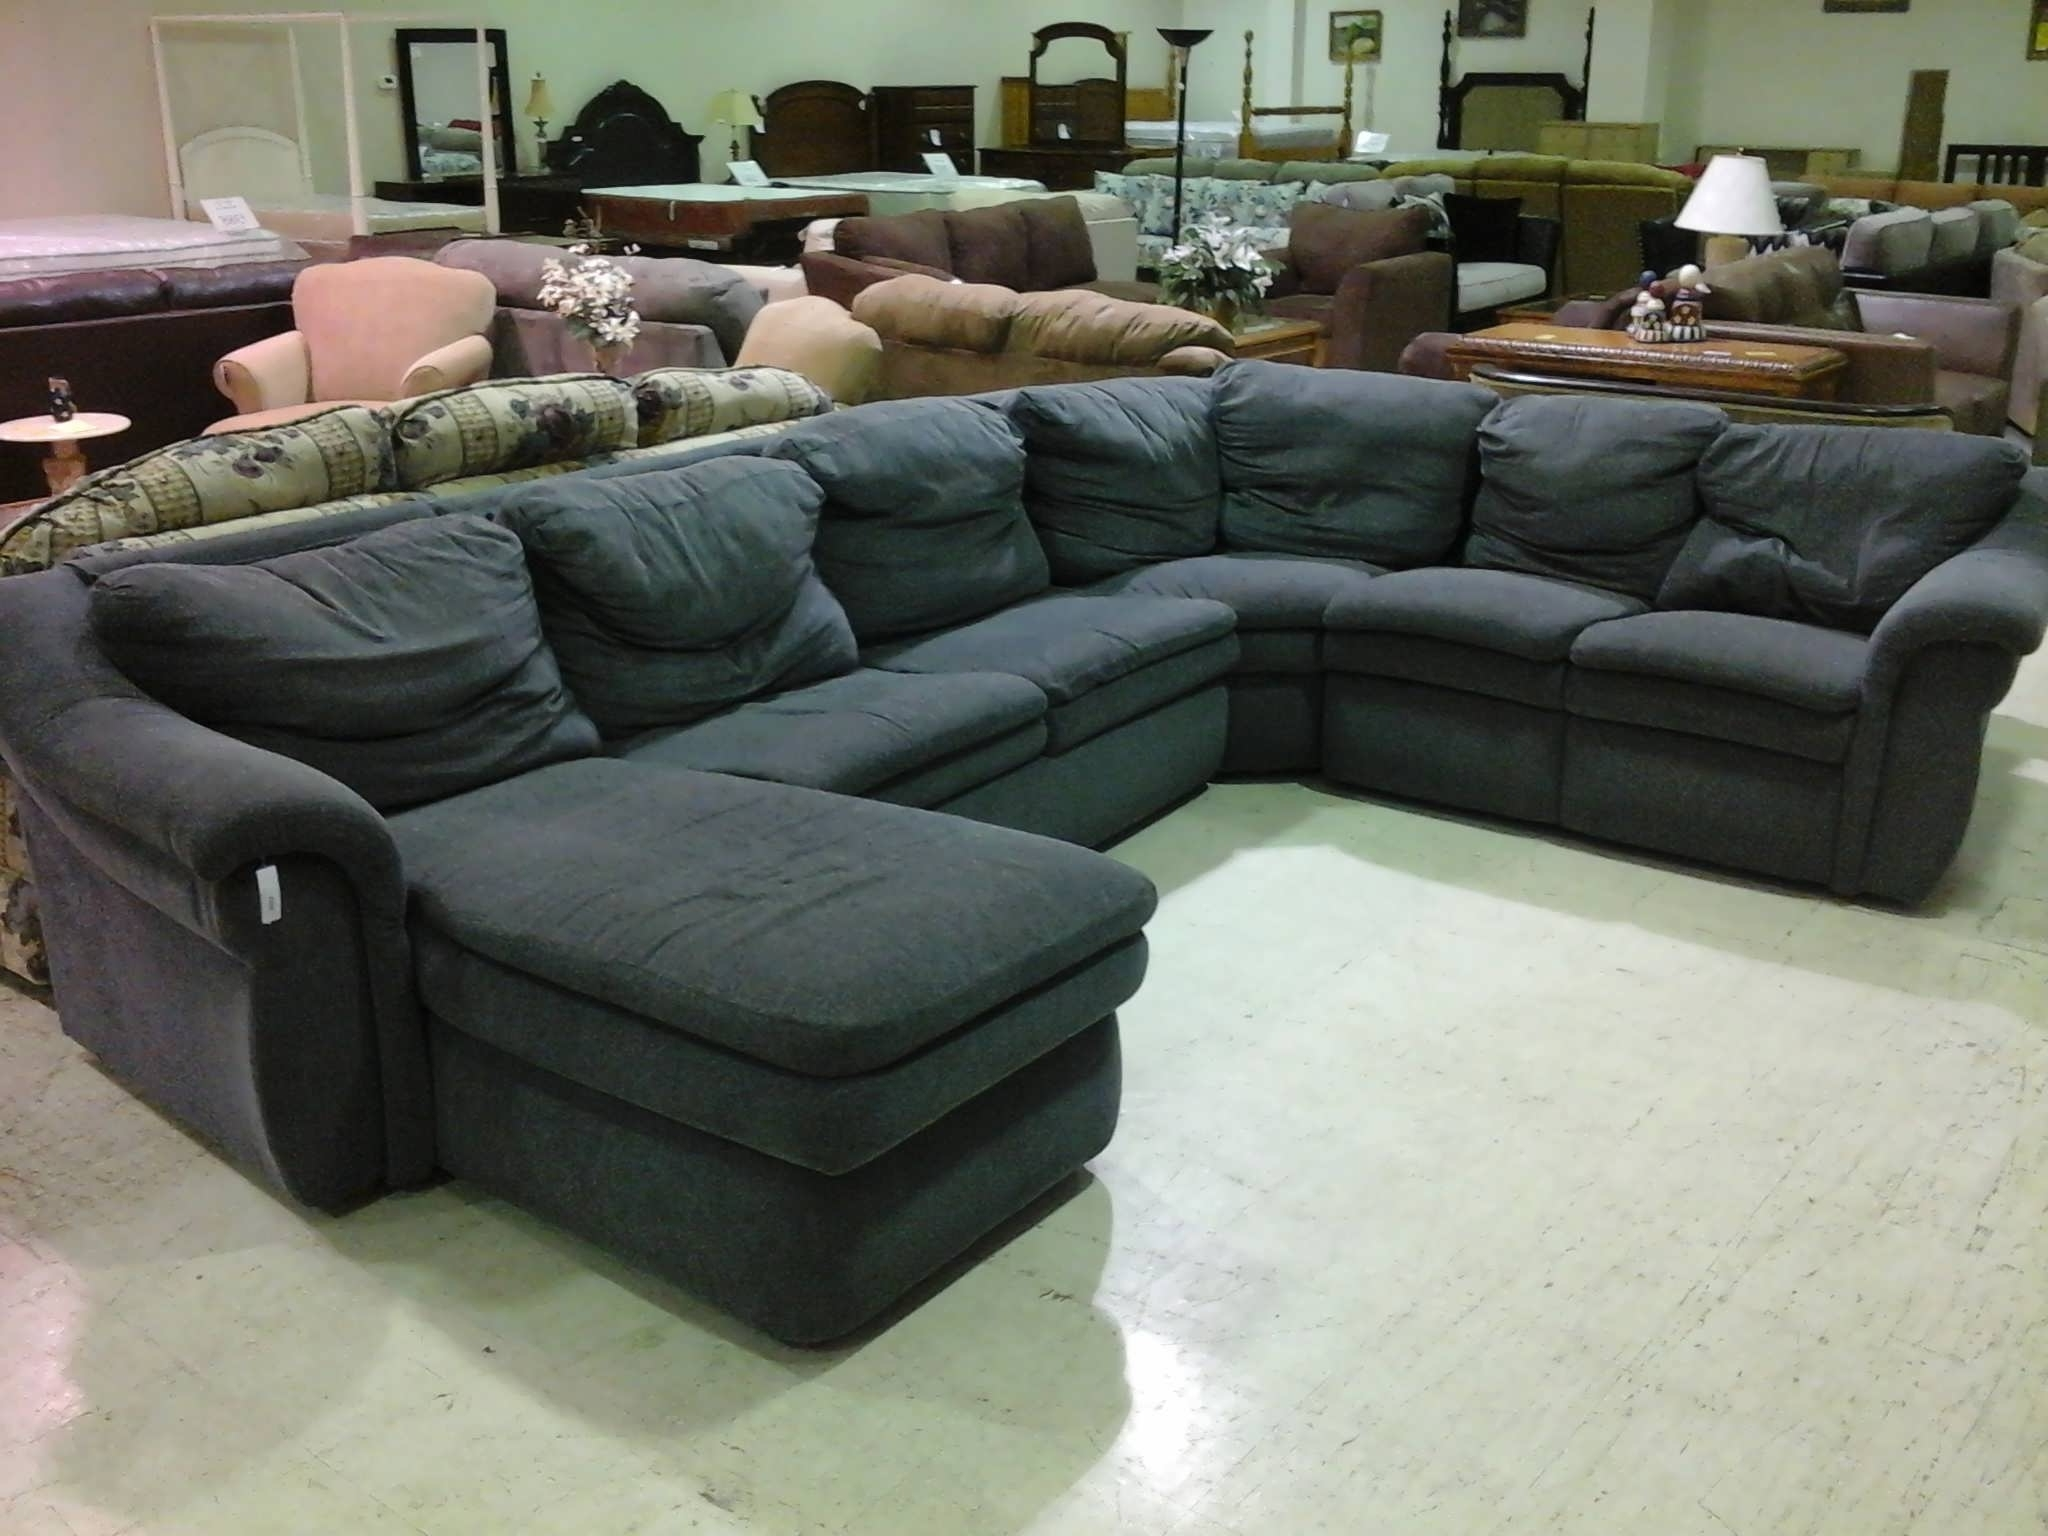 Trendy Sofa : Cheap Sectionals Small Sectional Sofa With Chaise L Shaped In Sectional Sofas With Recliner And Chaise Lounge (View 13 of 15)